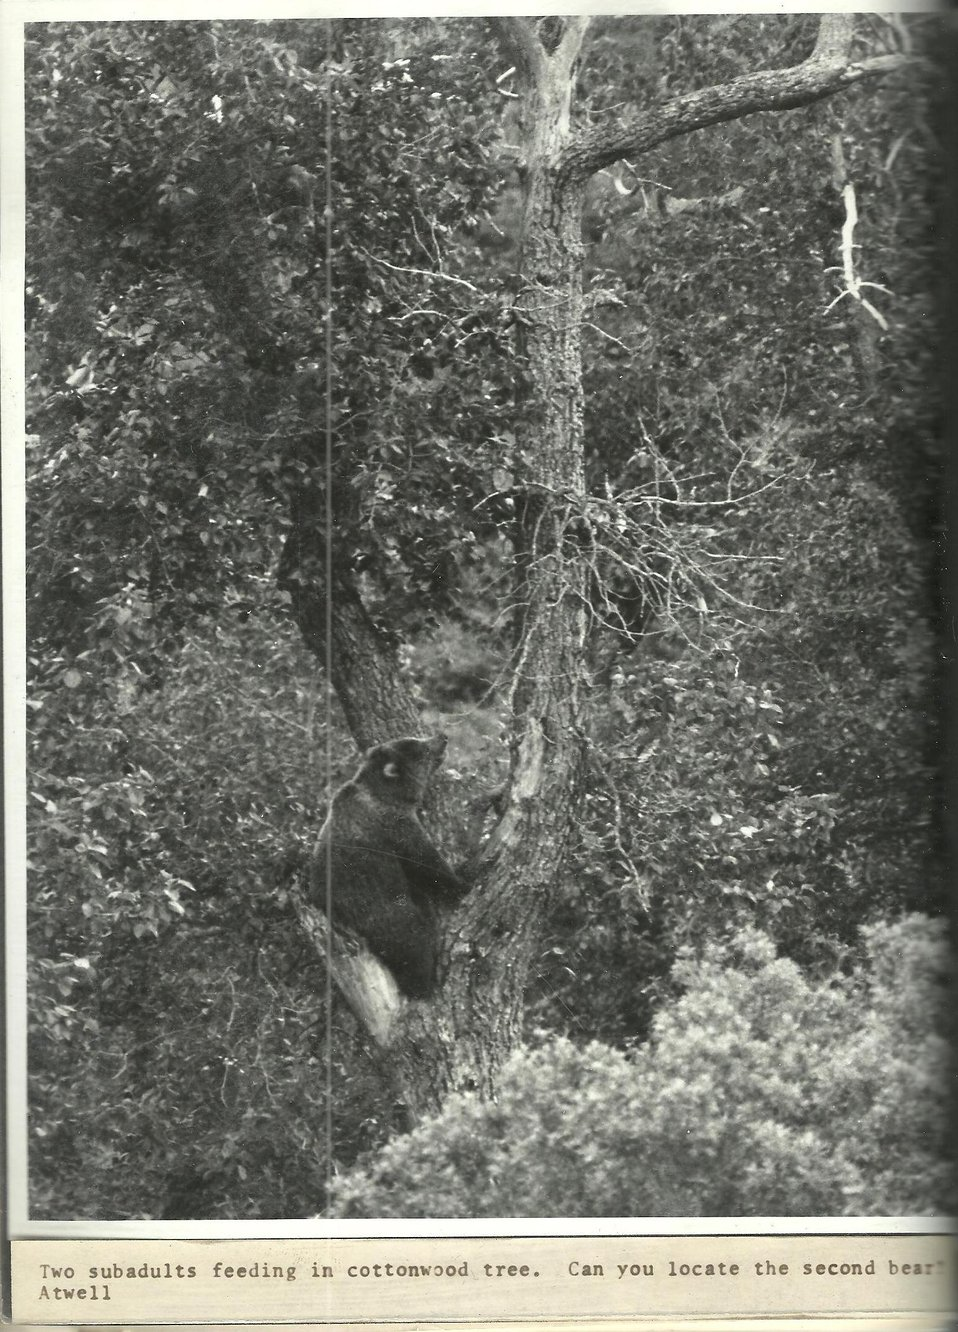 (1971) Can You Find the Second Bear